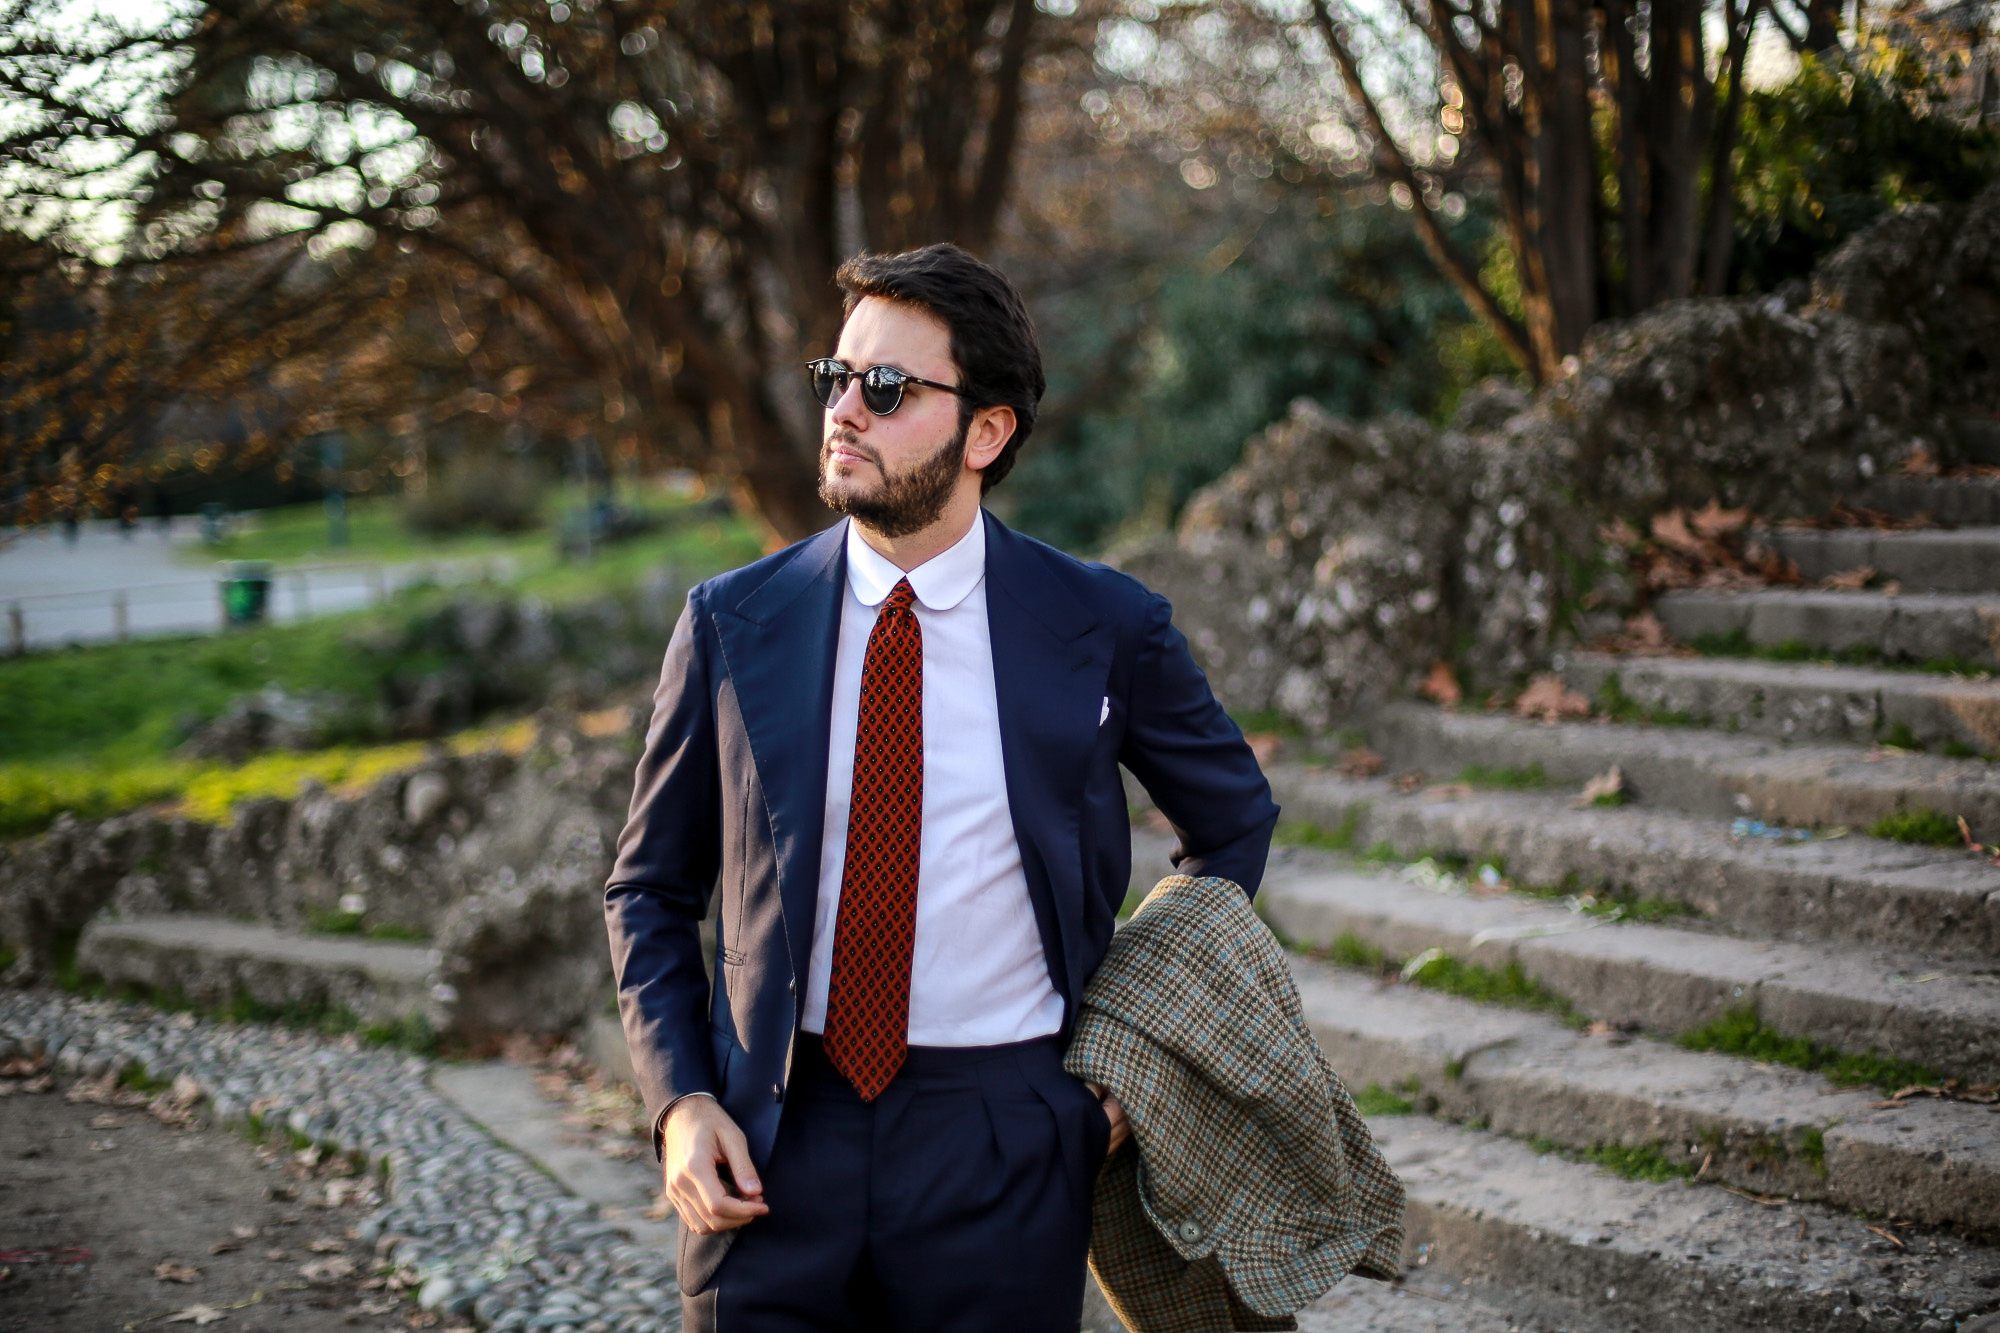 Edesim concave lapel line - Part II The photos of the final result